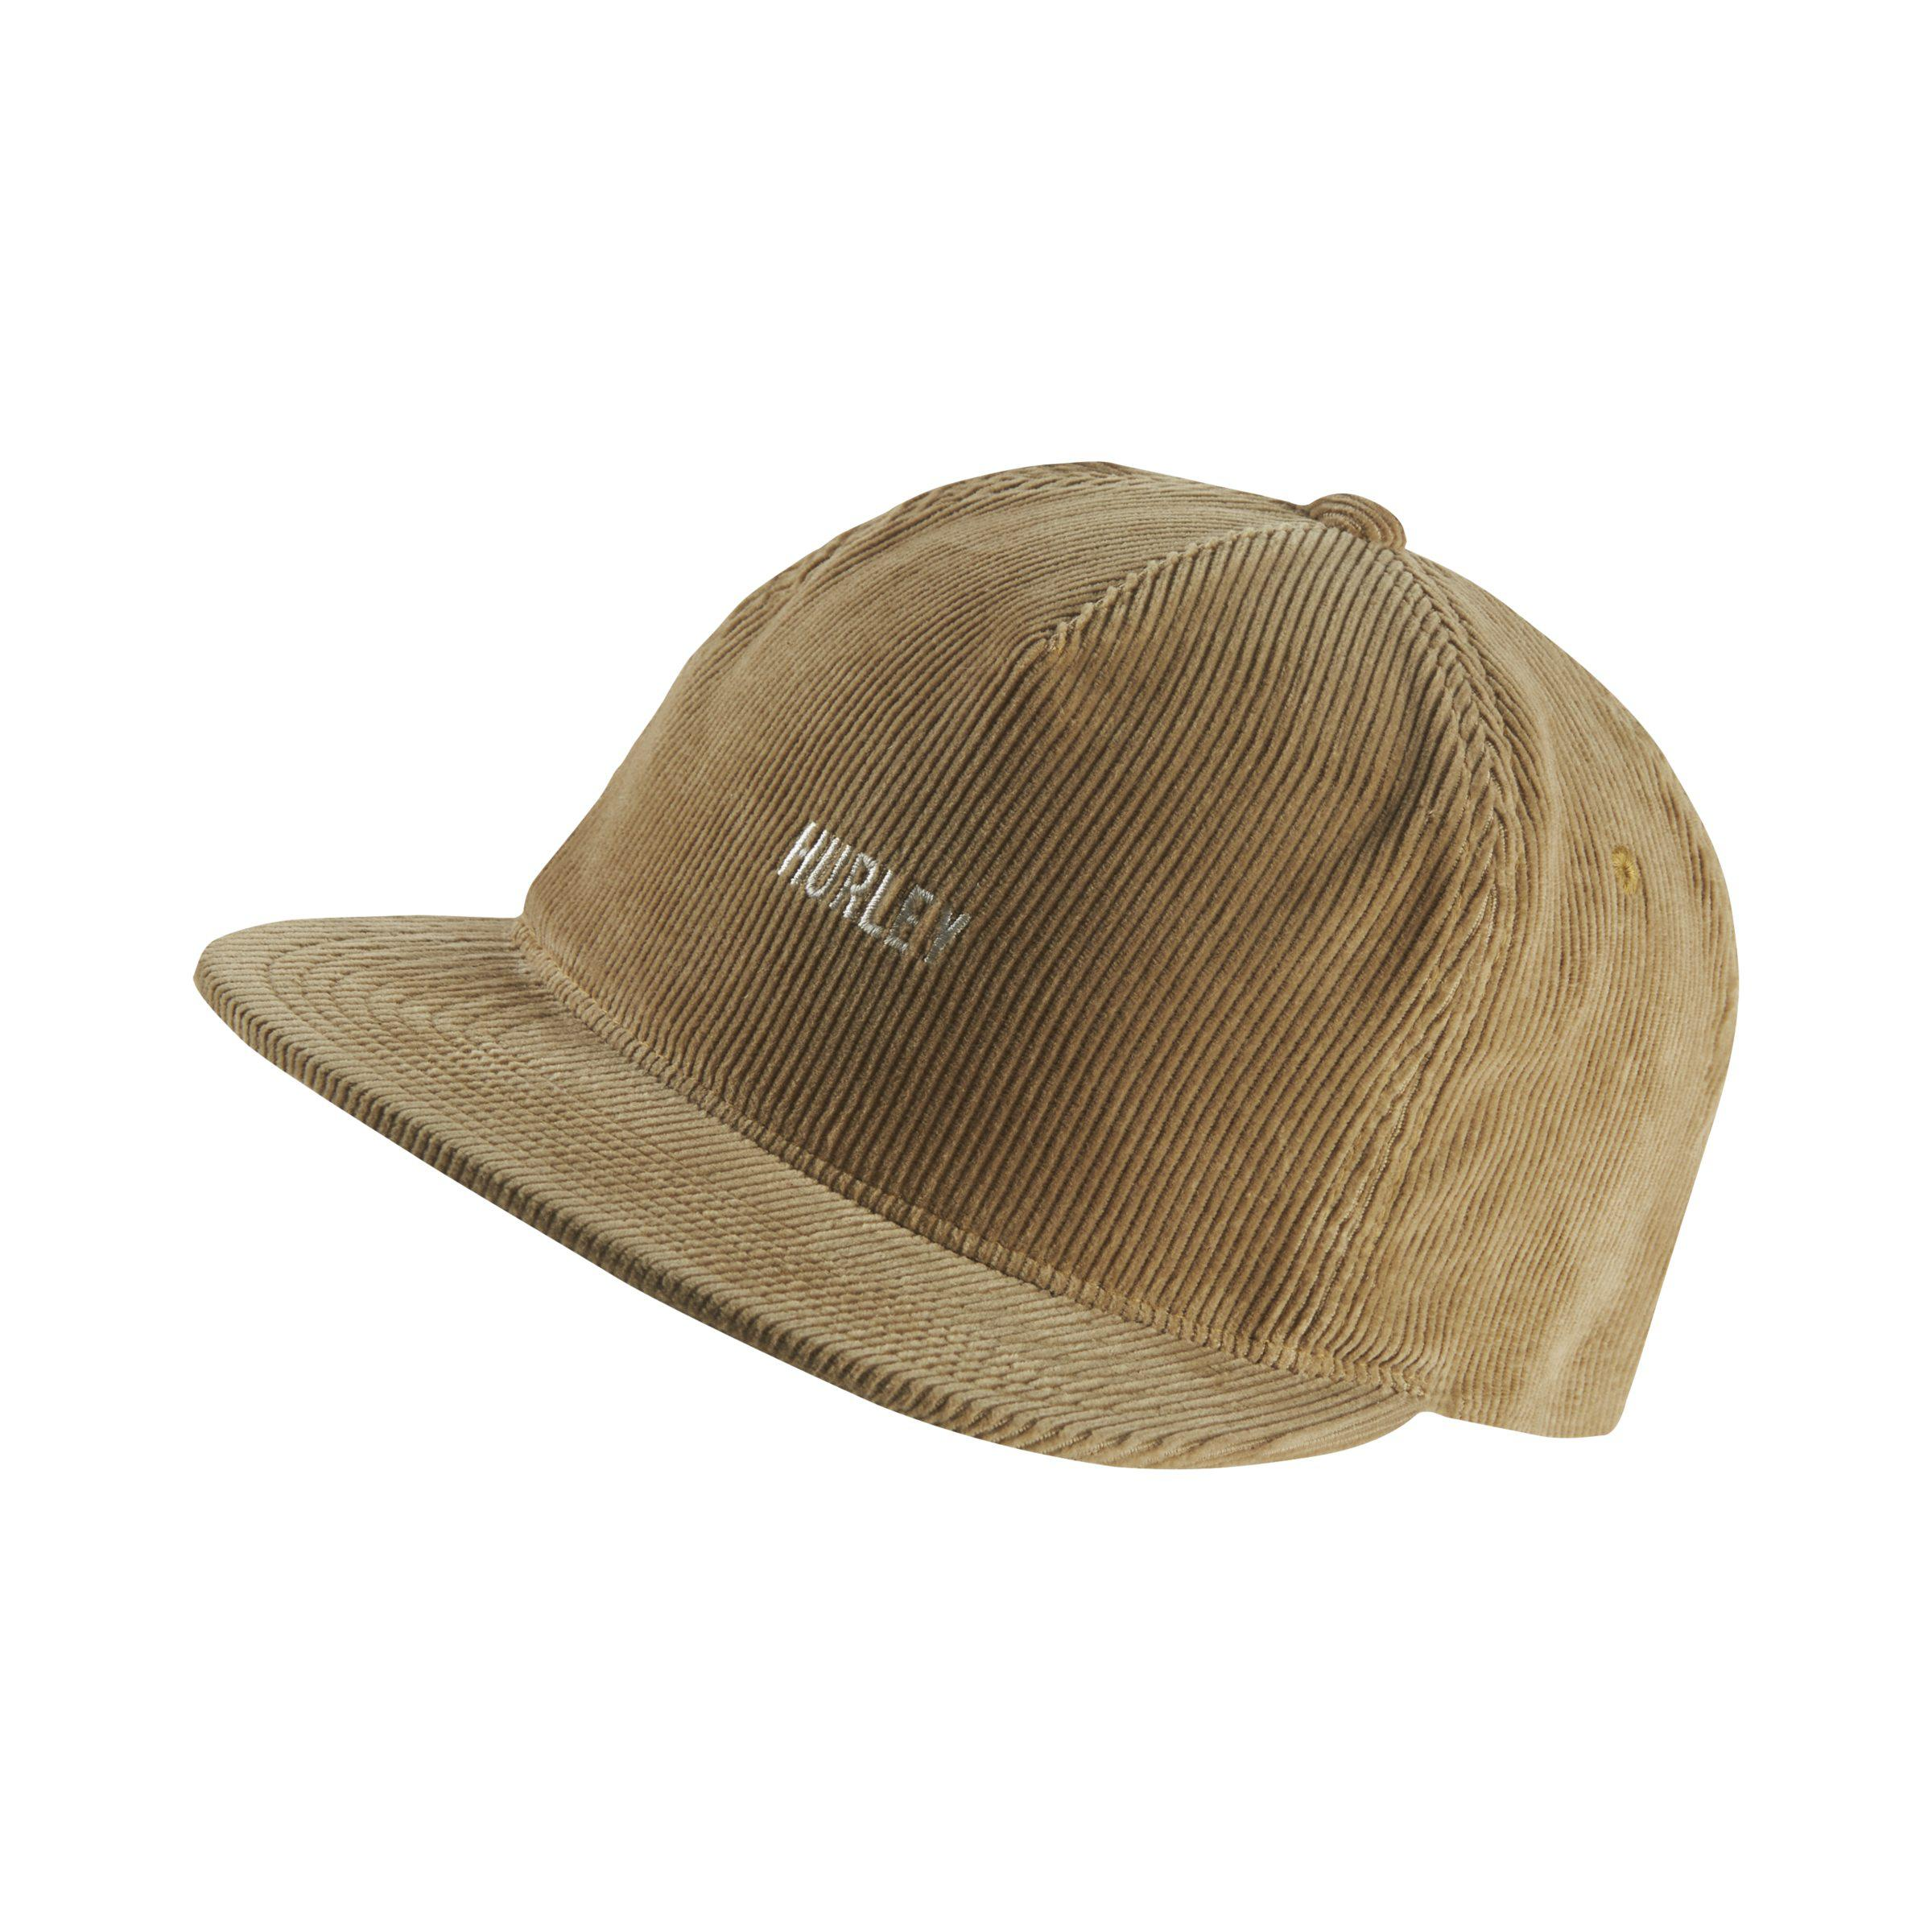 5e80761c0c3c4 Nike Hurley Cords Adjustable Hat in Natural for Men - Lyst